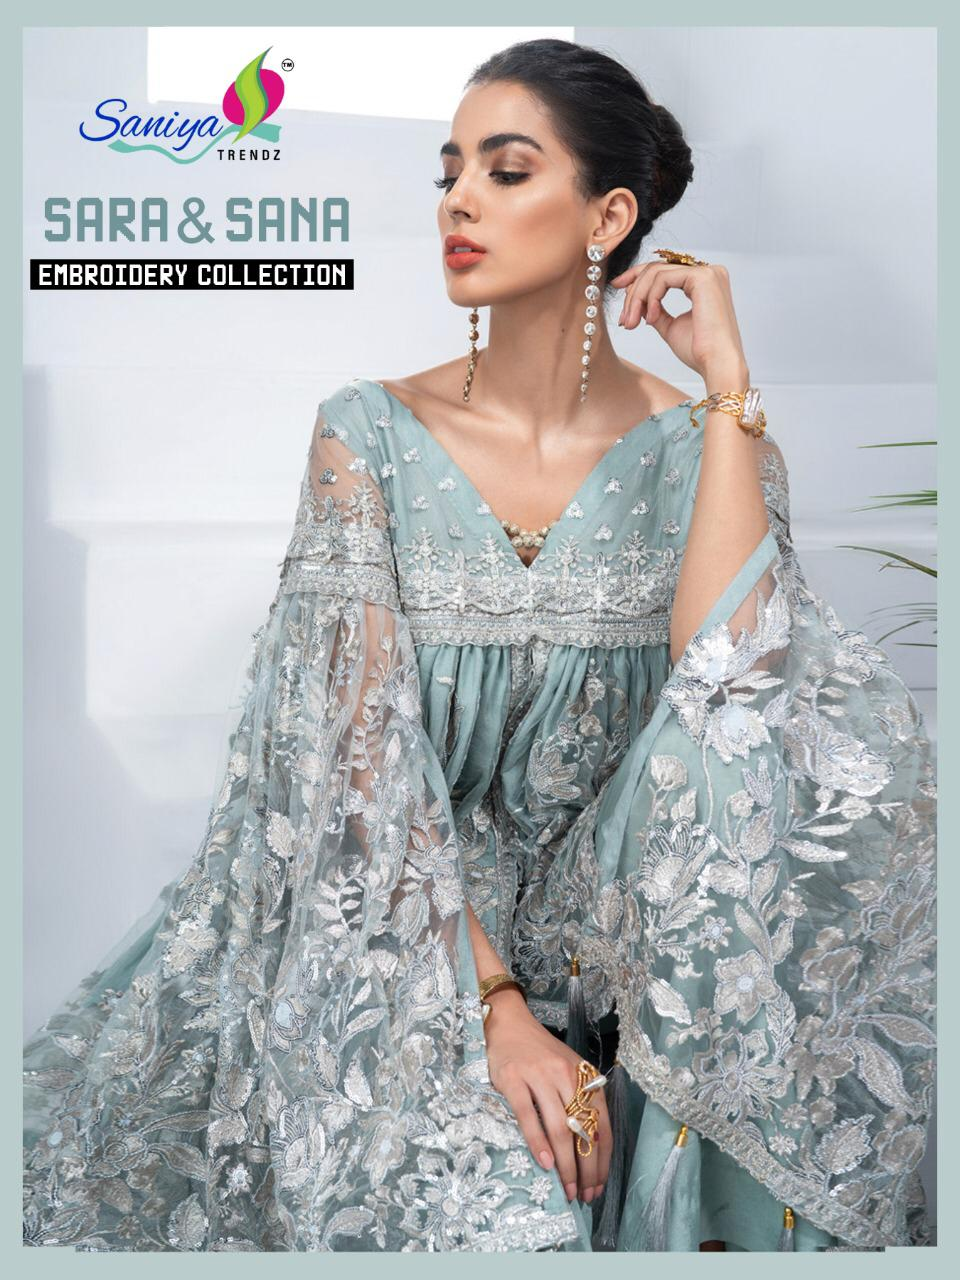 Saniya Trendz New Sara And Sana Embroidery Pakistani Catalog Collection